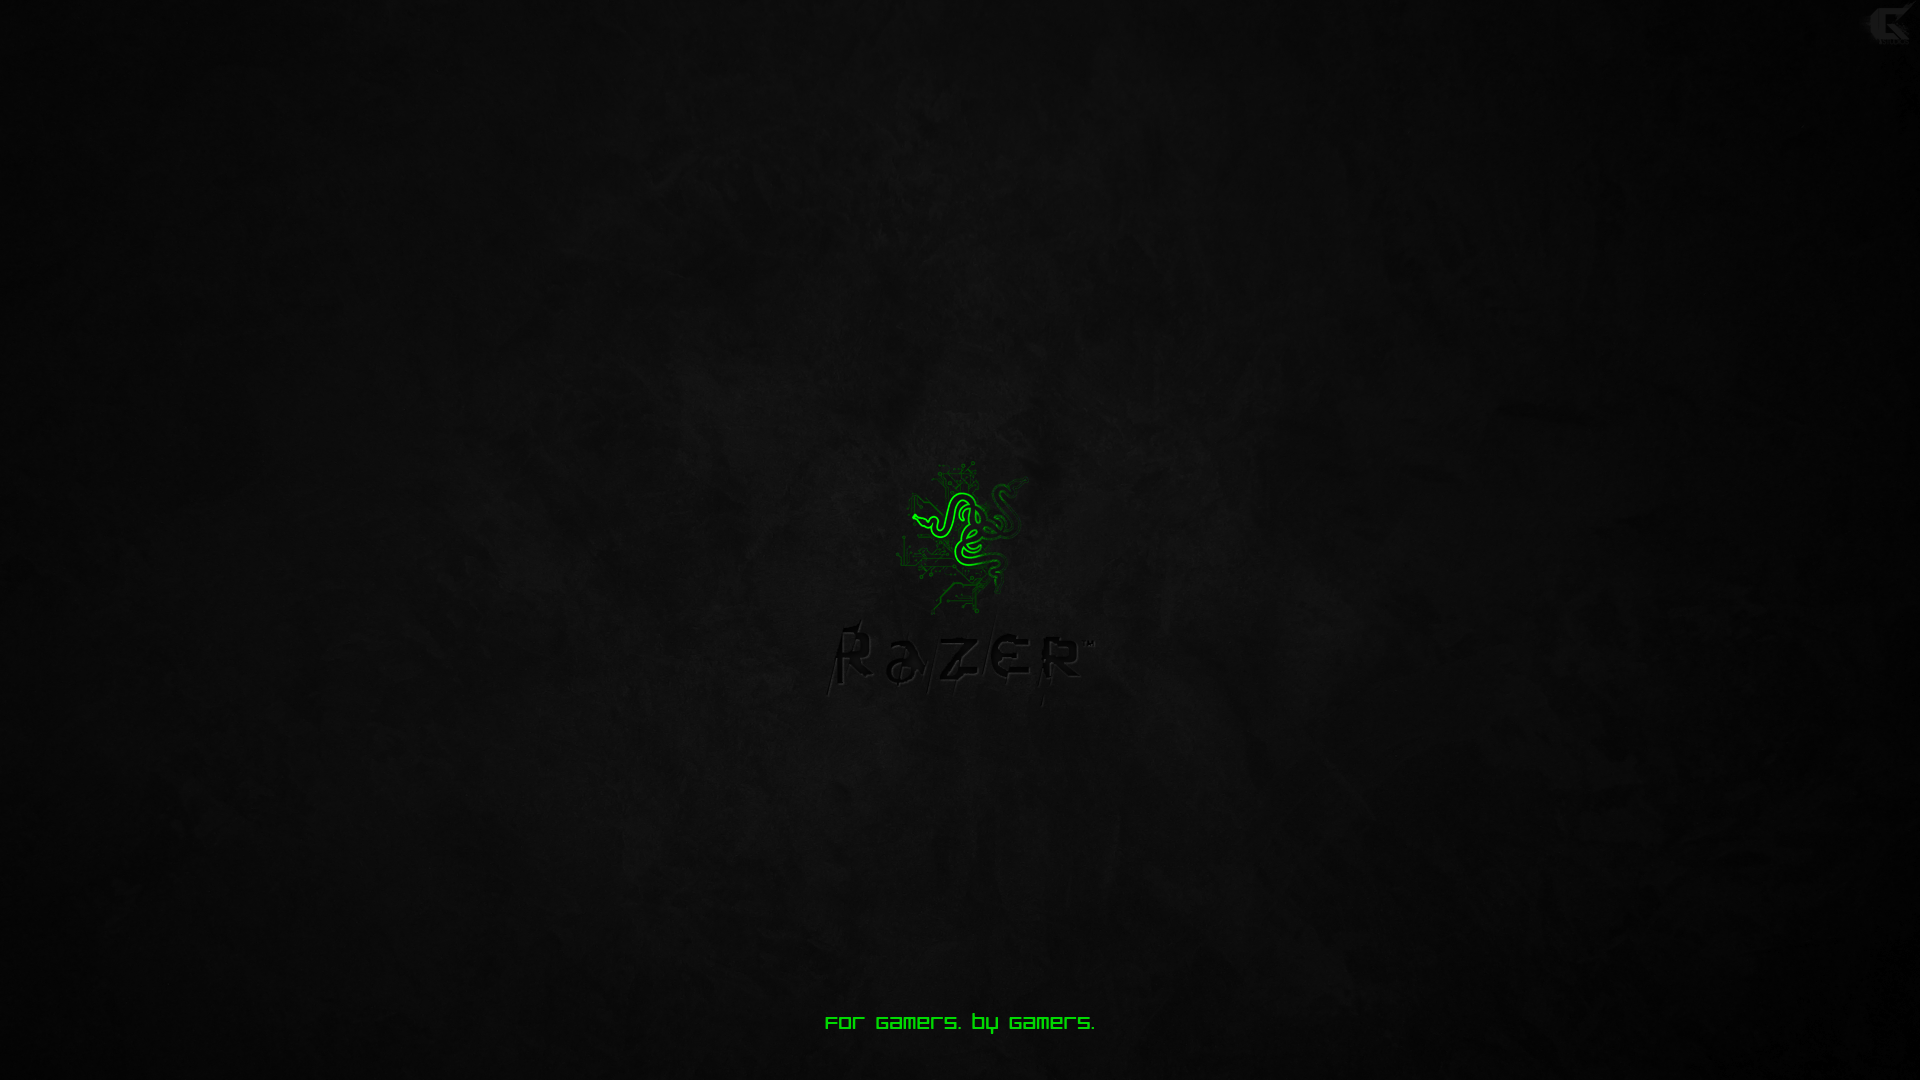 Razer Desktop Backgrounds